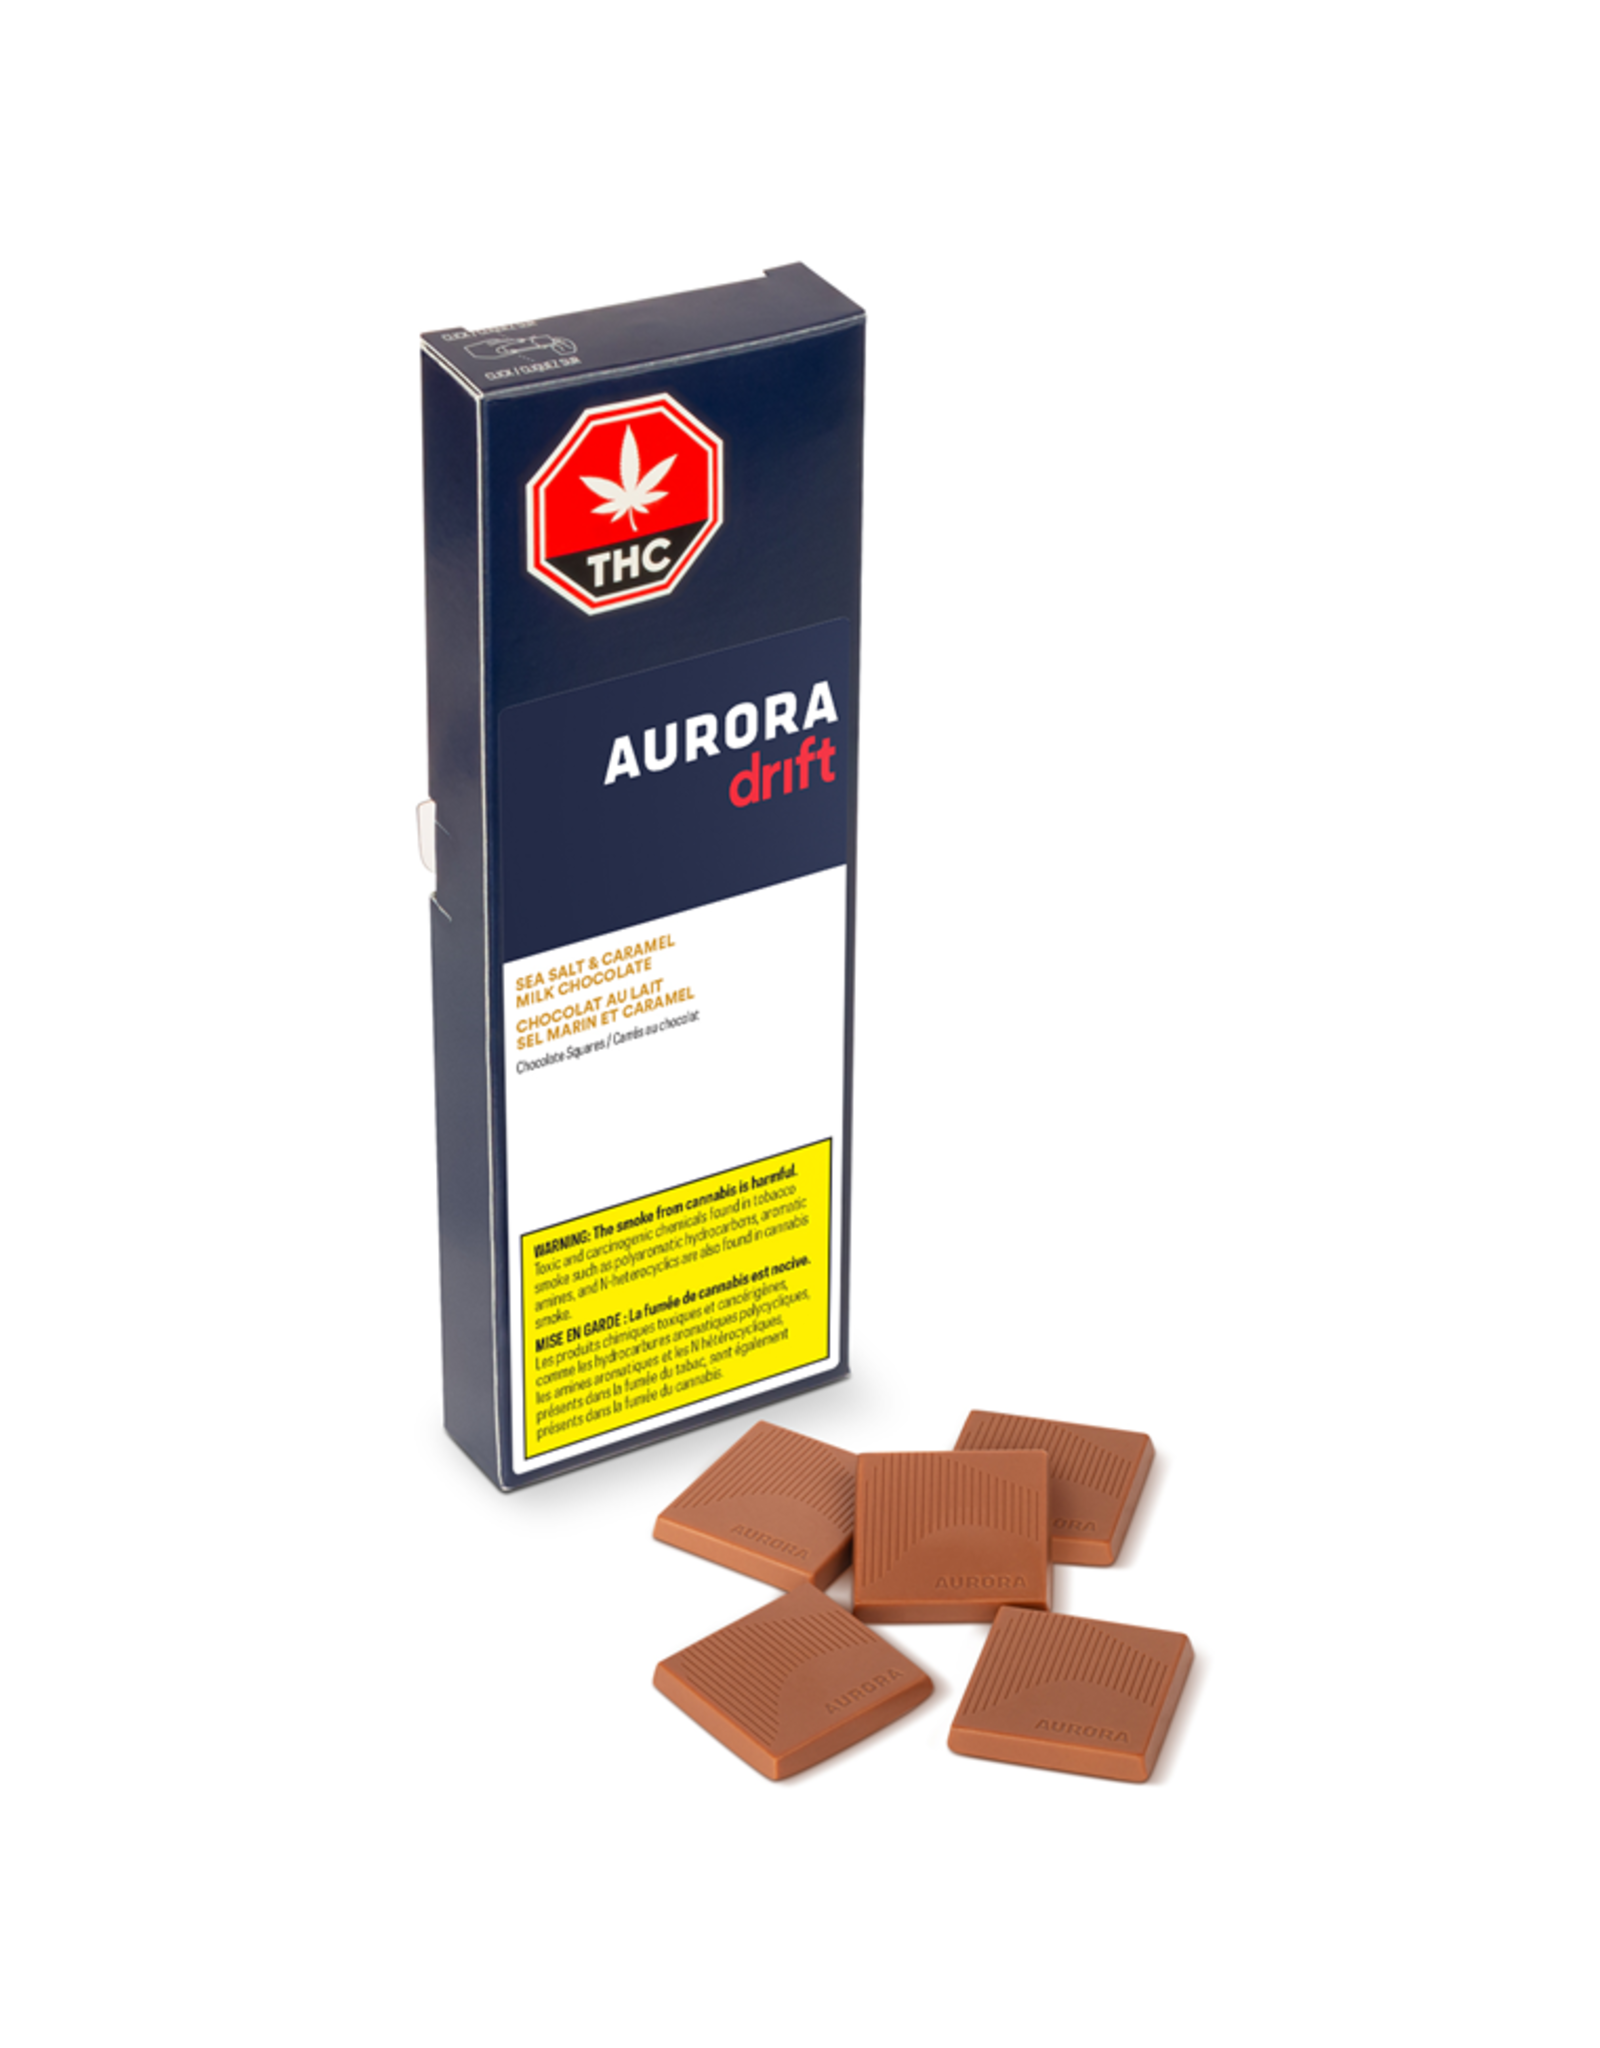 Aurora Aurora Drift - Sea Salt & Caramel Milk Chocolate